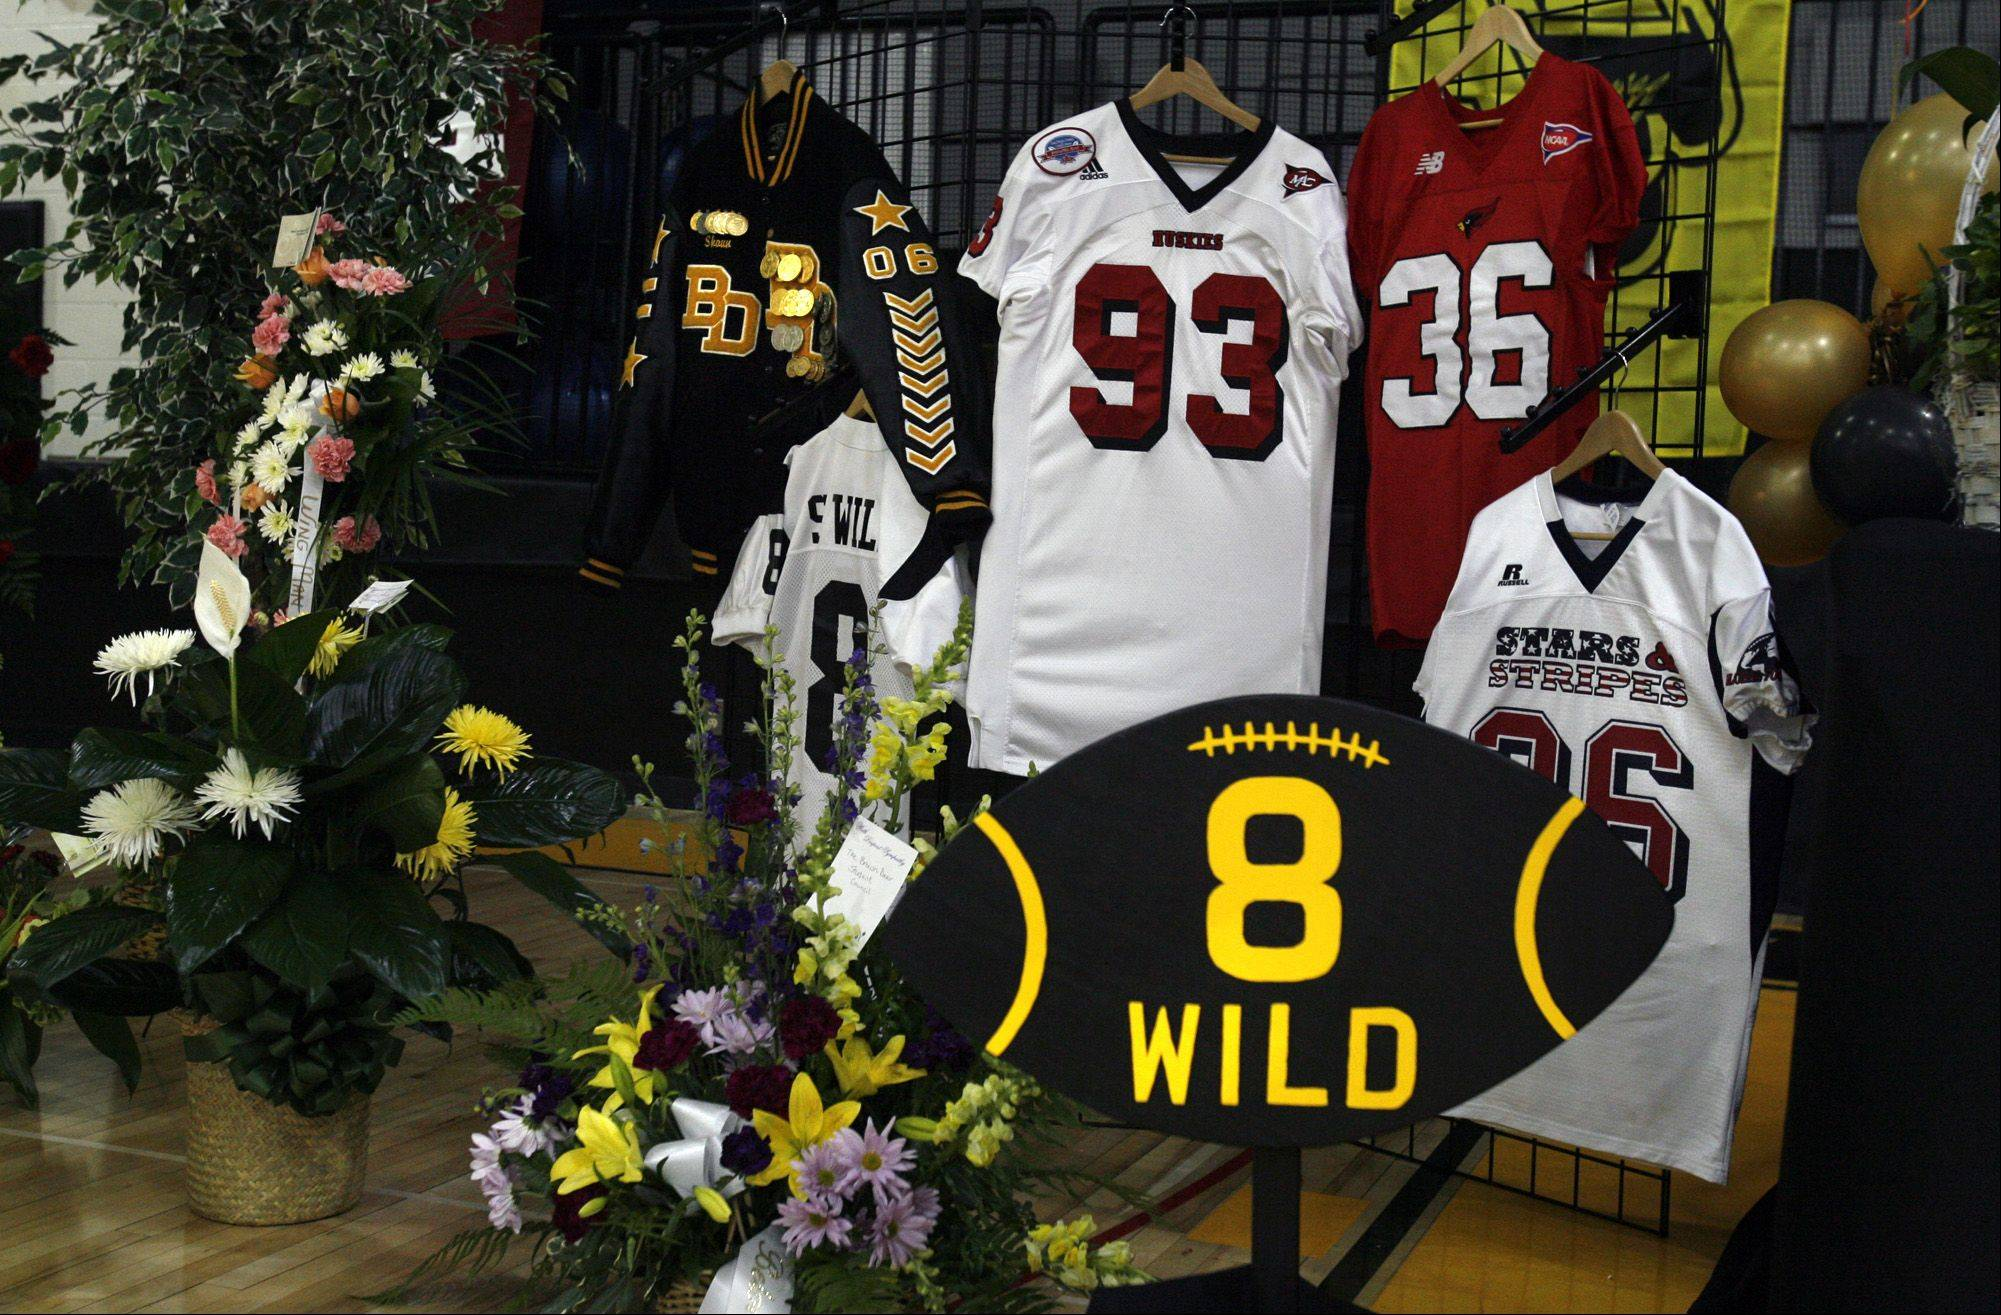 A memorial to Shaun Wild was on display.